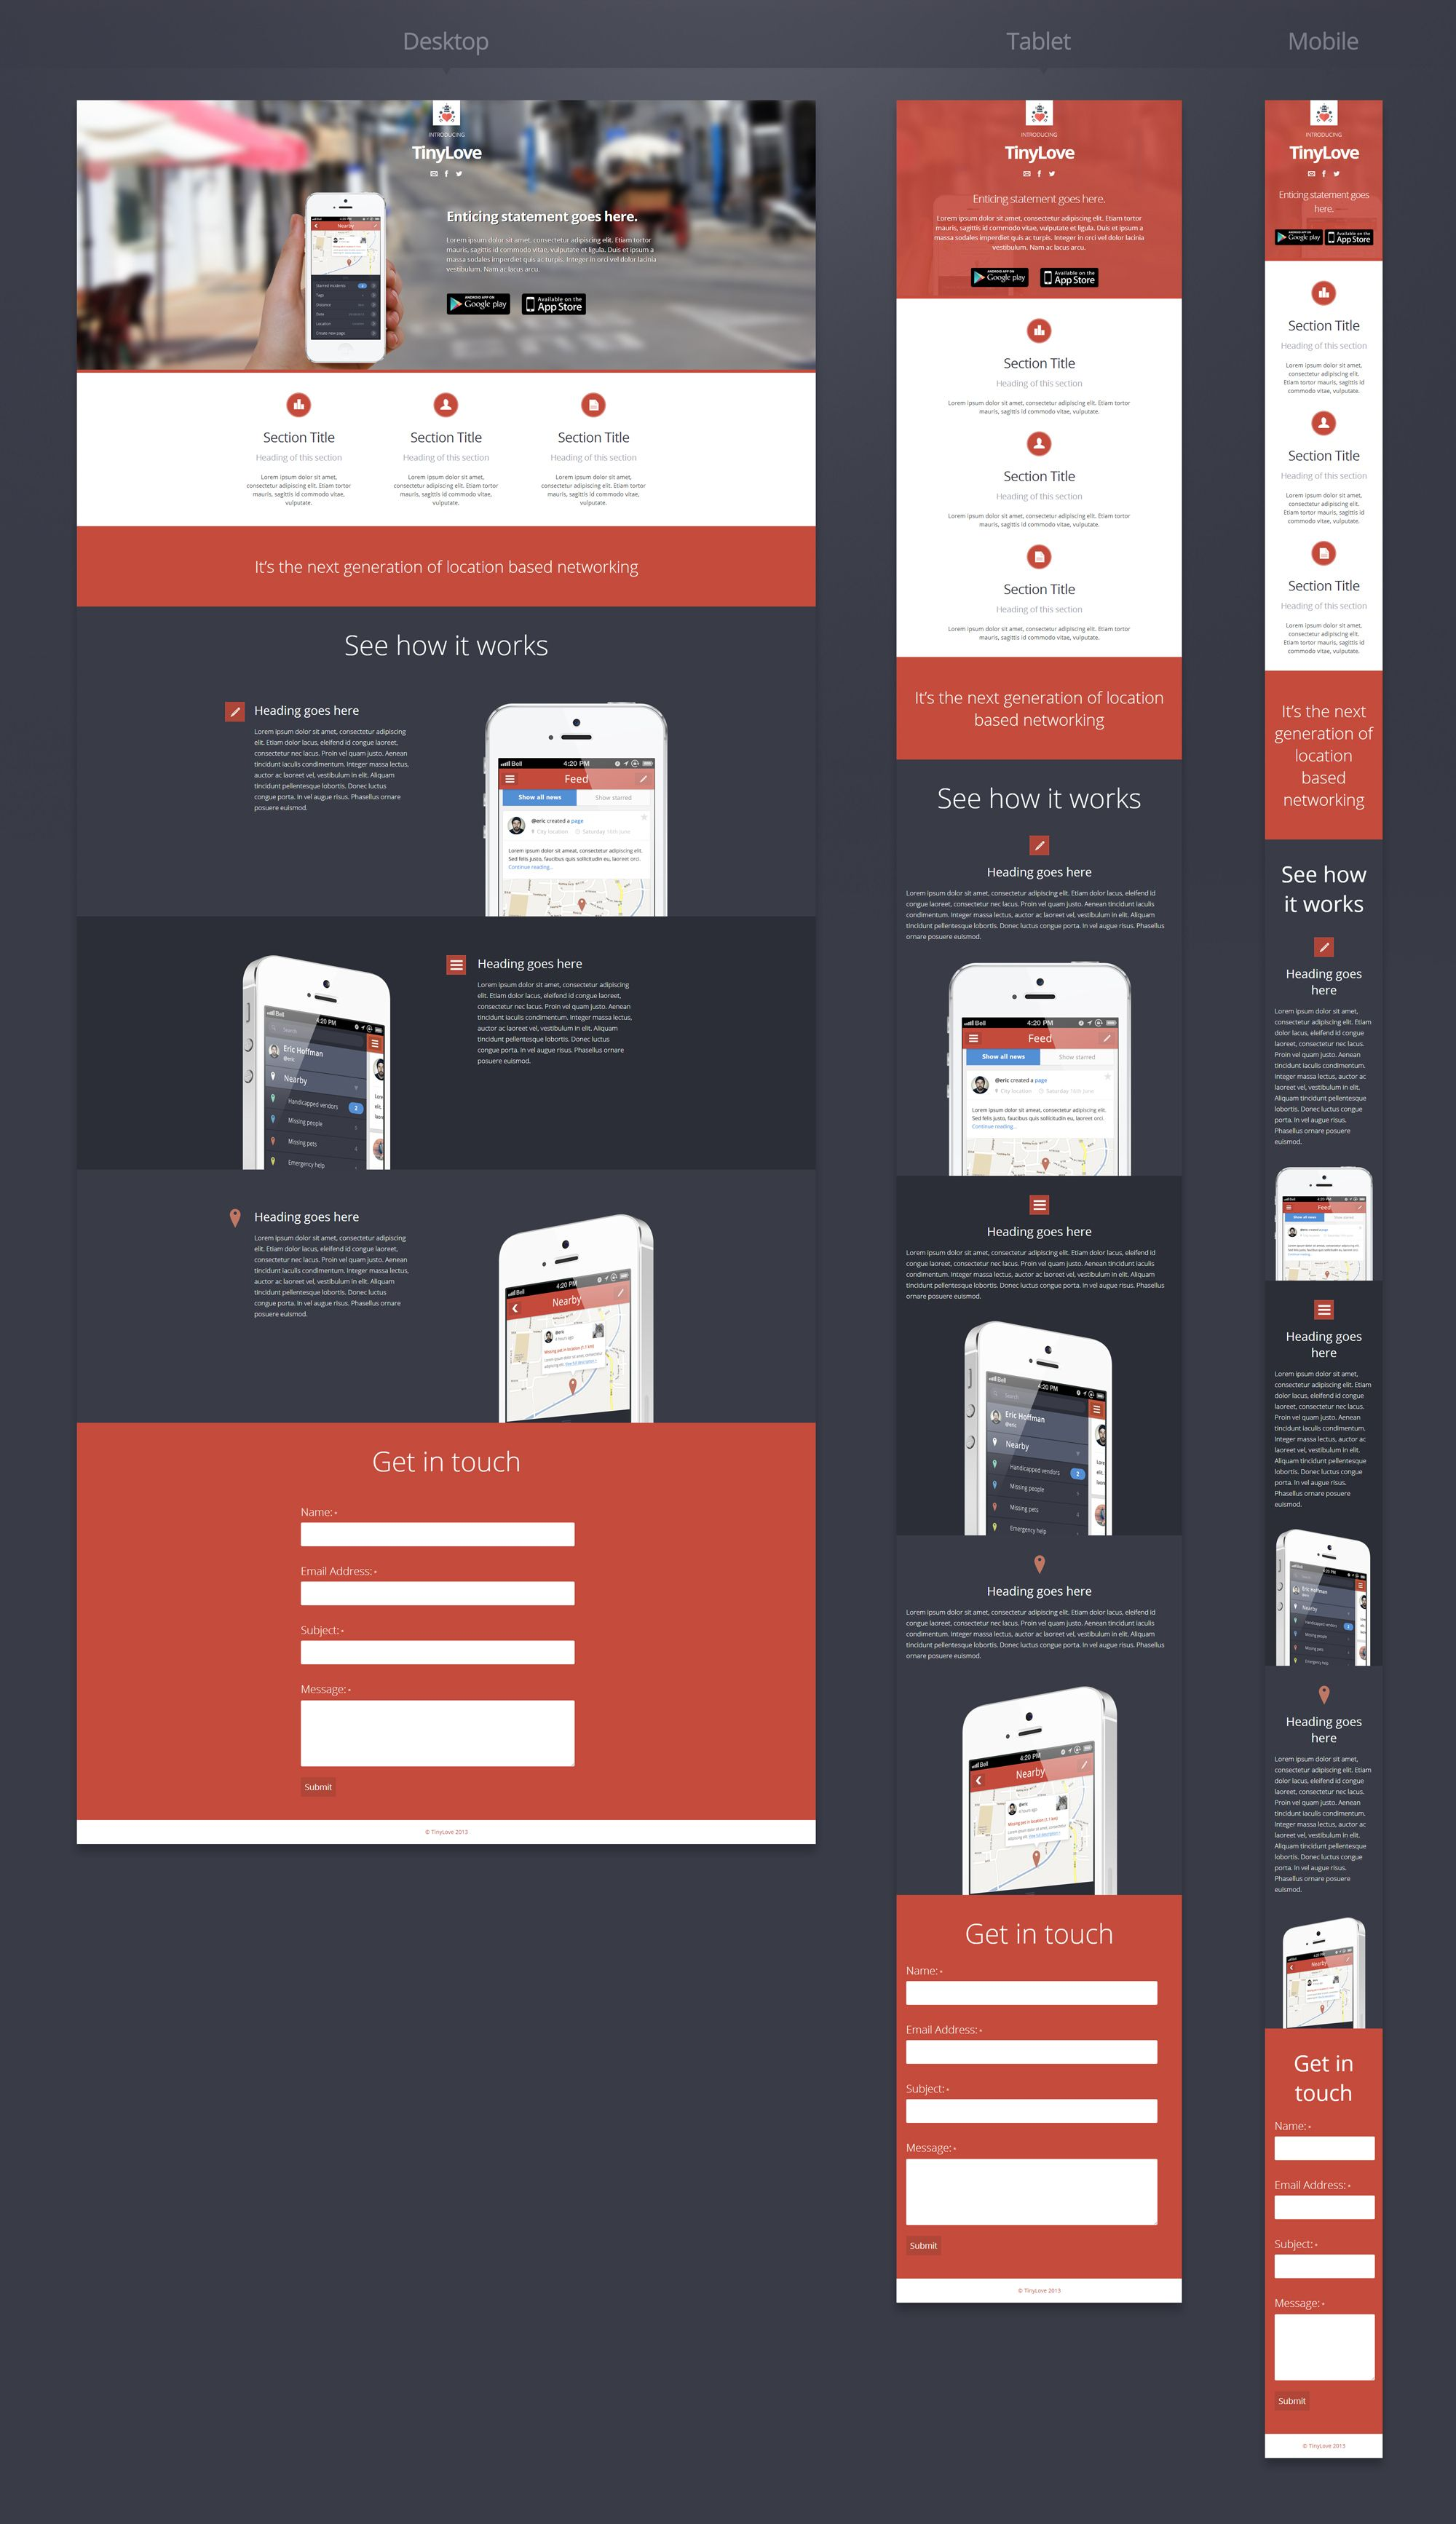 Preview Of A Responsive Website Design Webdesign Responsive Inspiration Creative Web Layout Design Mobile Web Design Web App Design